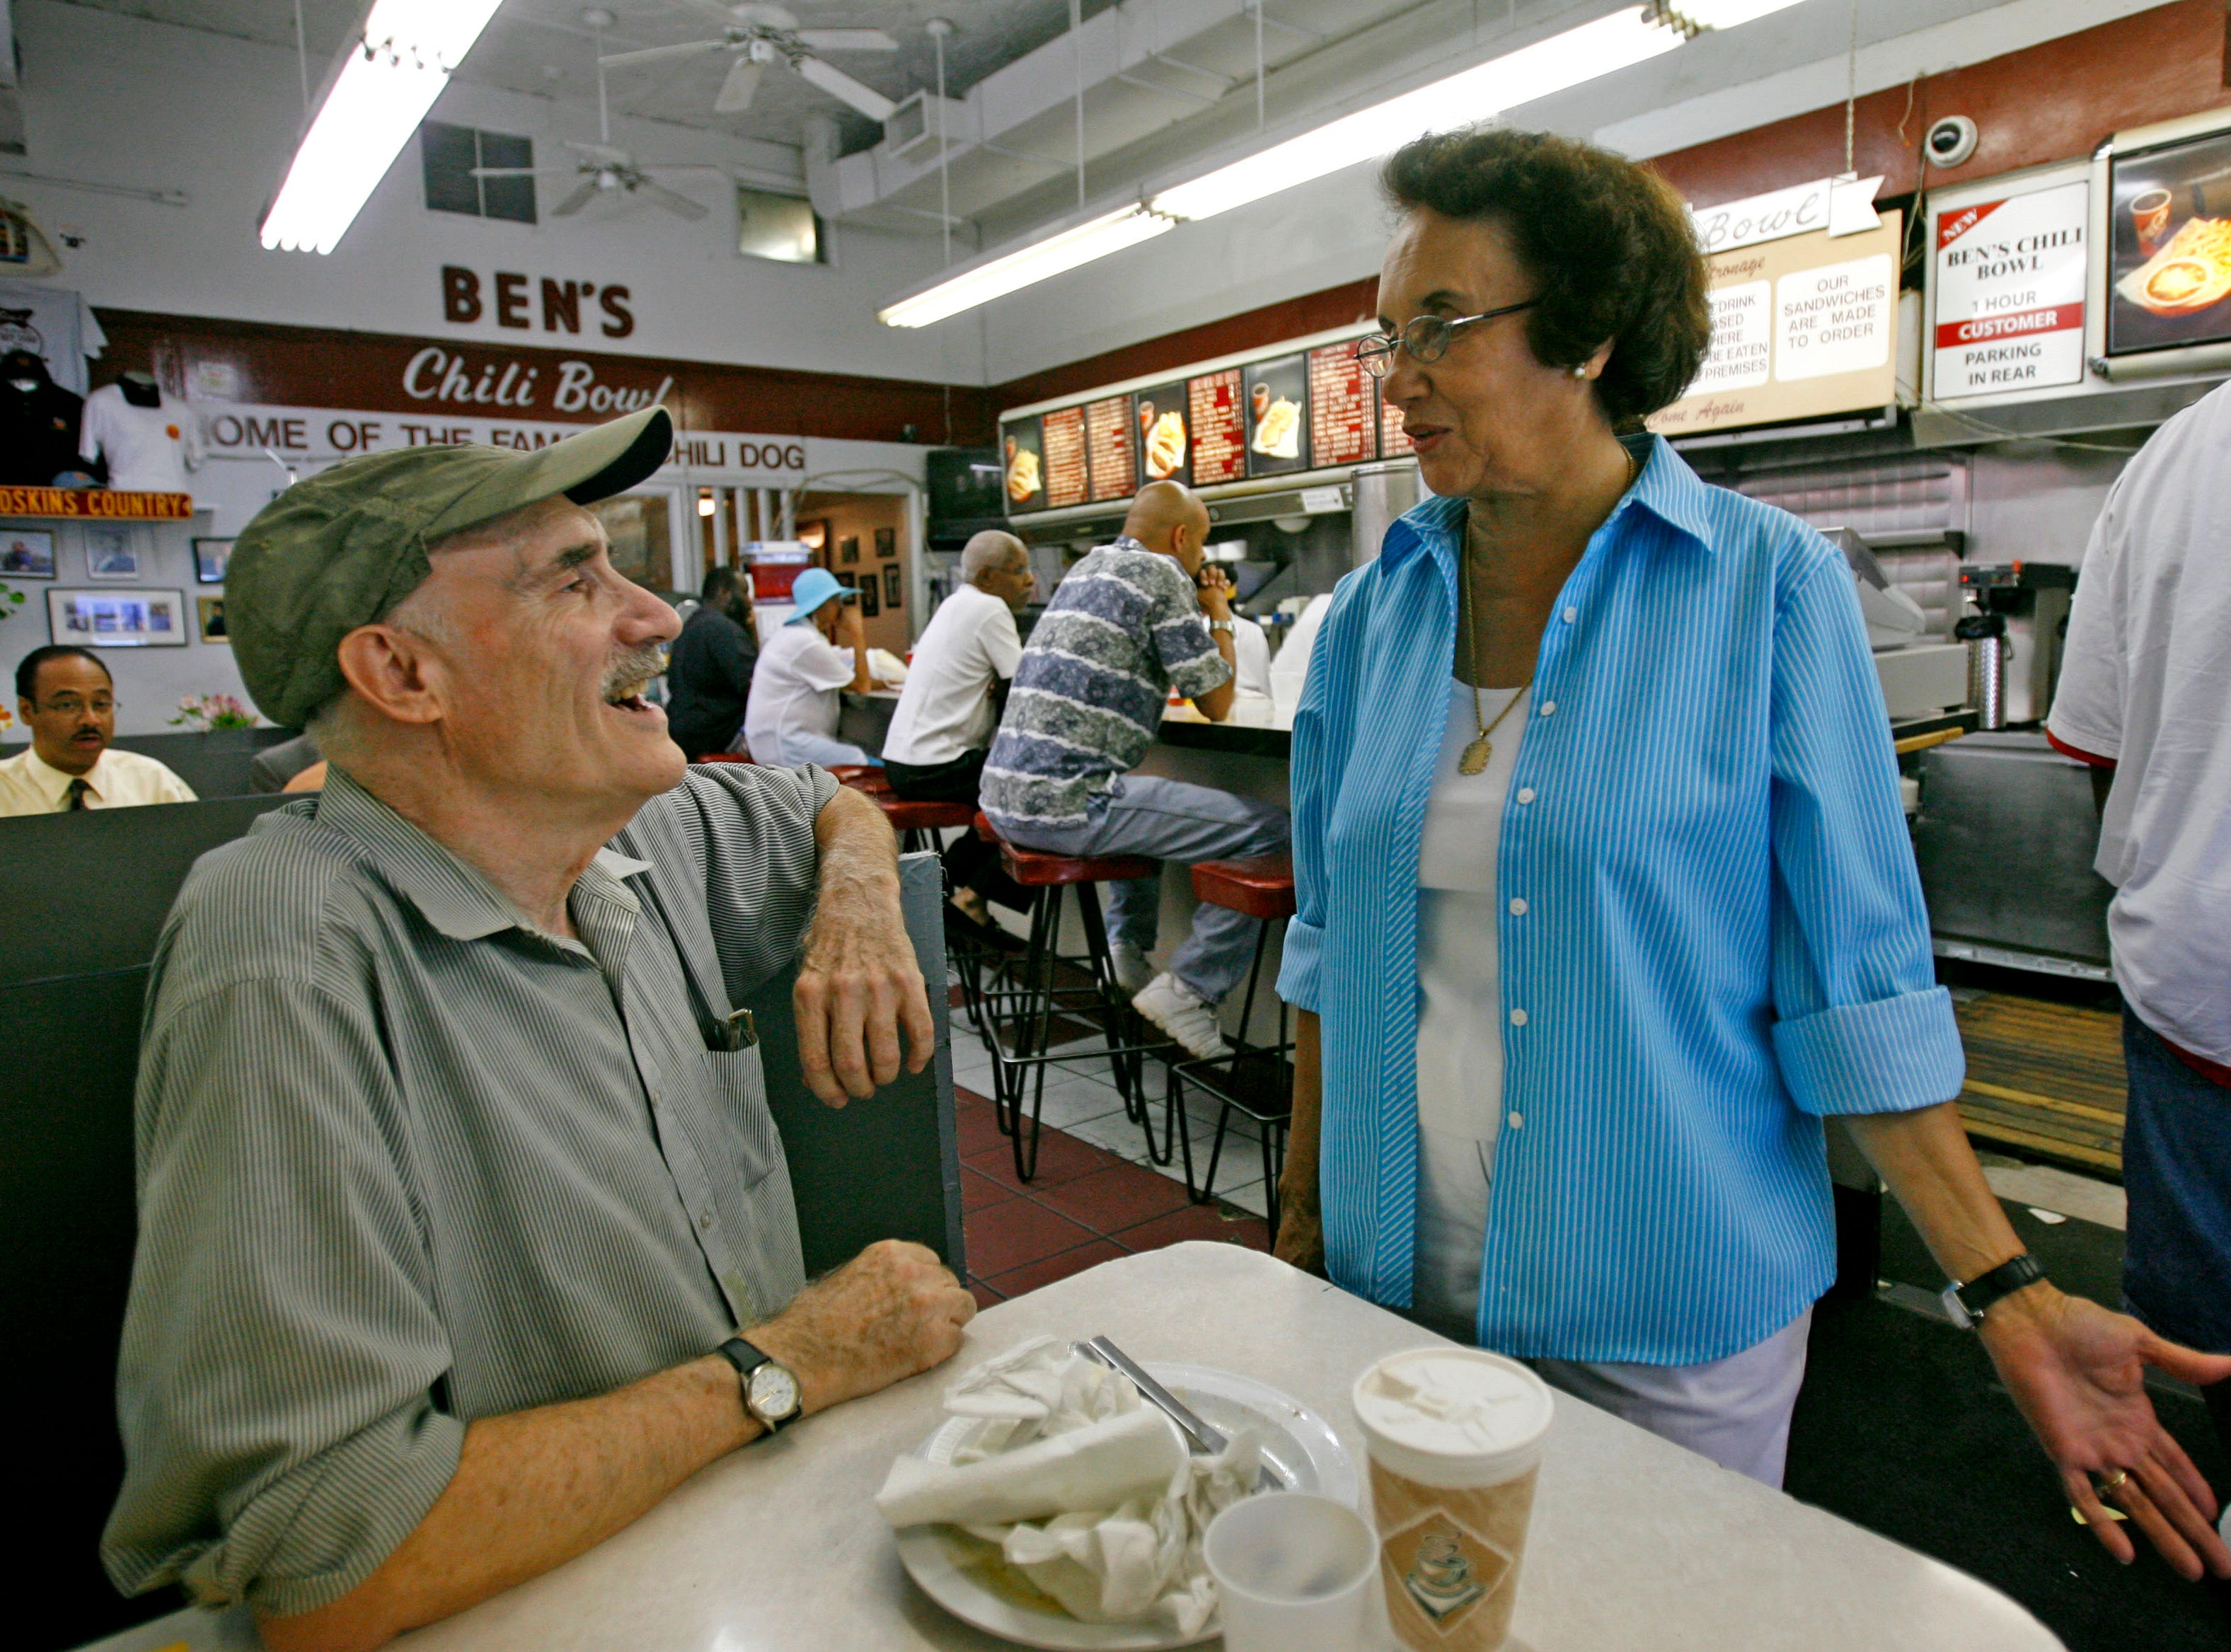 "Dave MacDonald, 68, of Washington, left, visits with Virginia Ali, 74, co-owner of Ben's Chili Bowl, in Washington, Aug. 1, 2007. ""I like the atmosphere and I like the people who come here,"" says MacDonald, ""there are a lot of new people coming but the atmosphere is the same."""